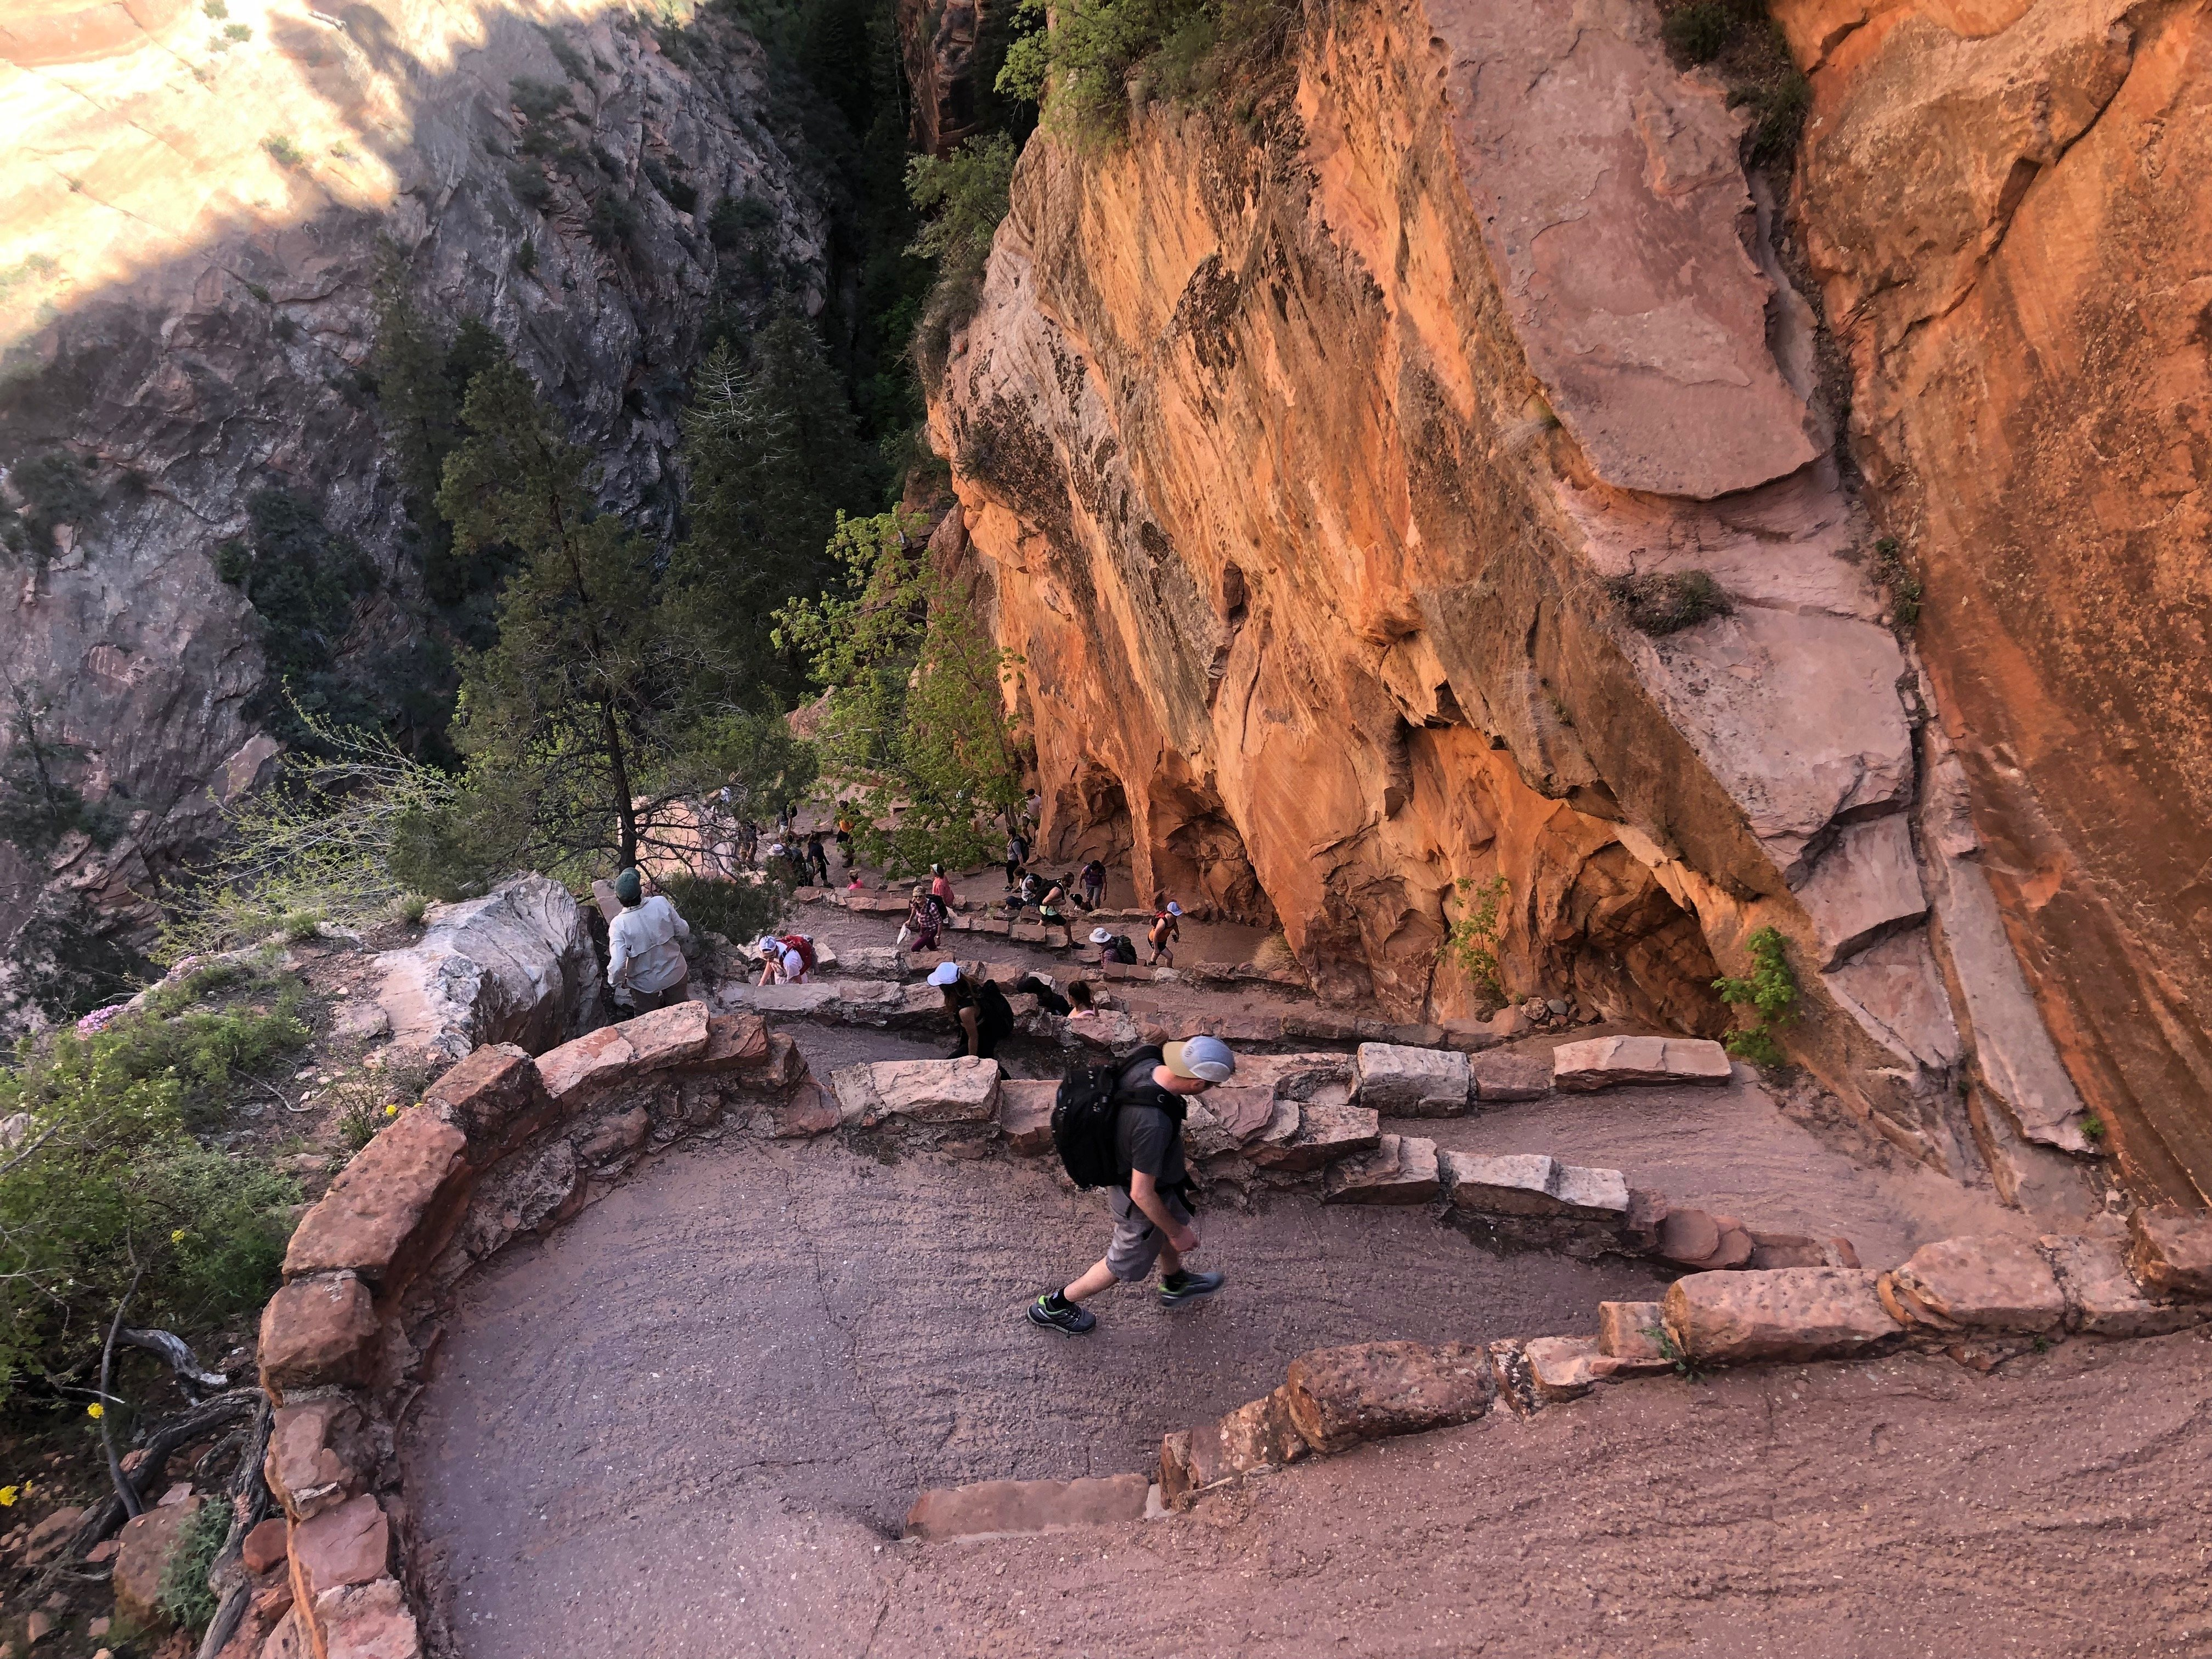 Walter's Wiggles are a set of switchbacks you'll encounter while hiking Angels Landing.